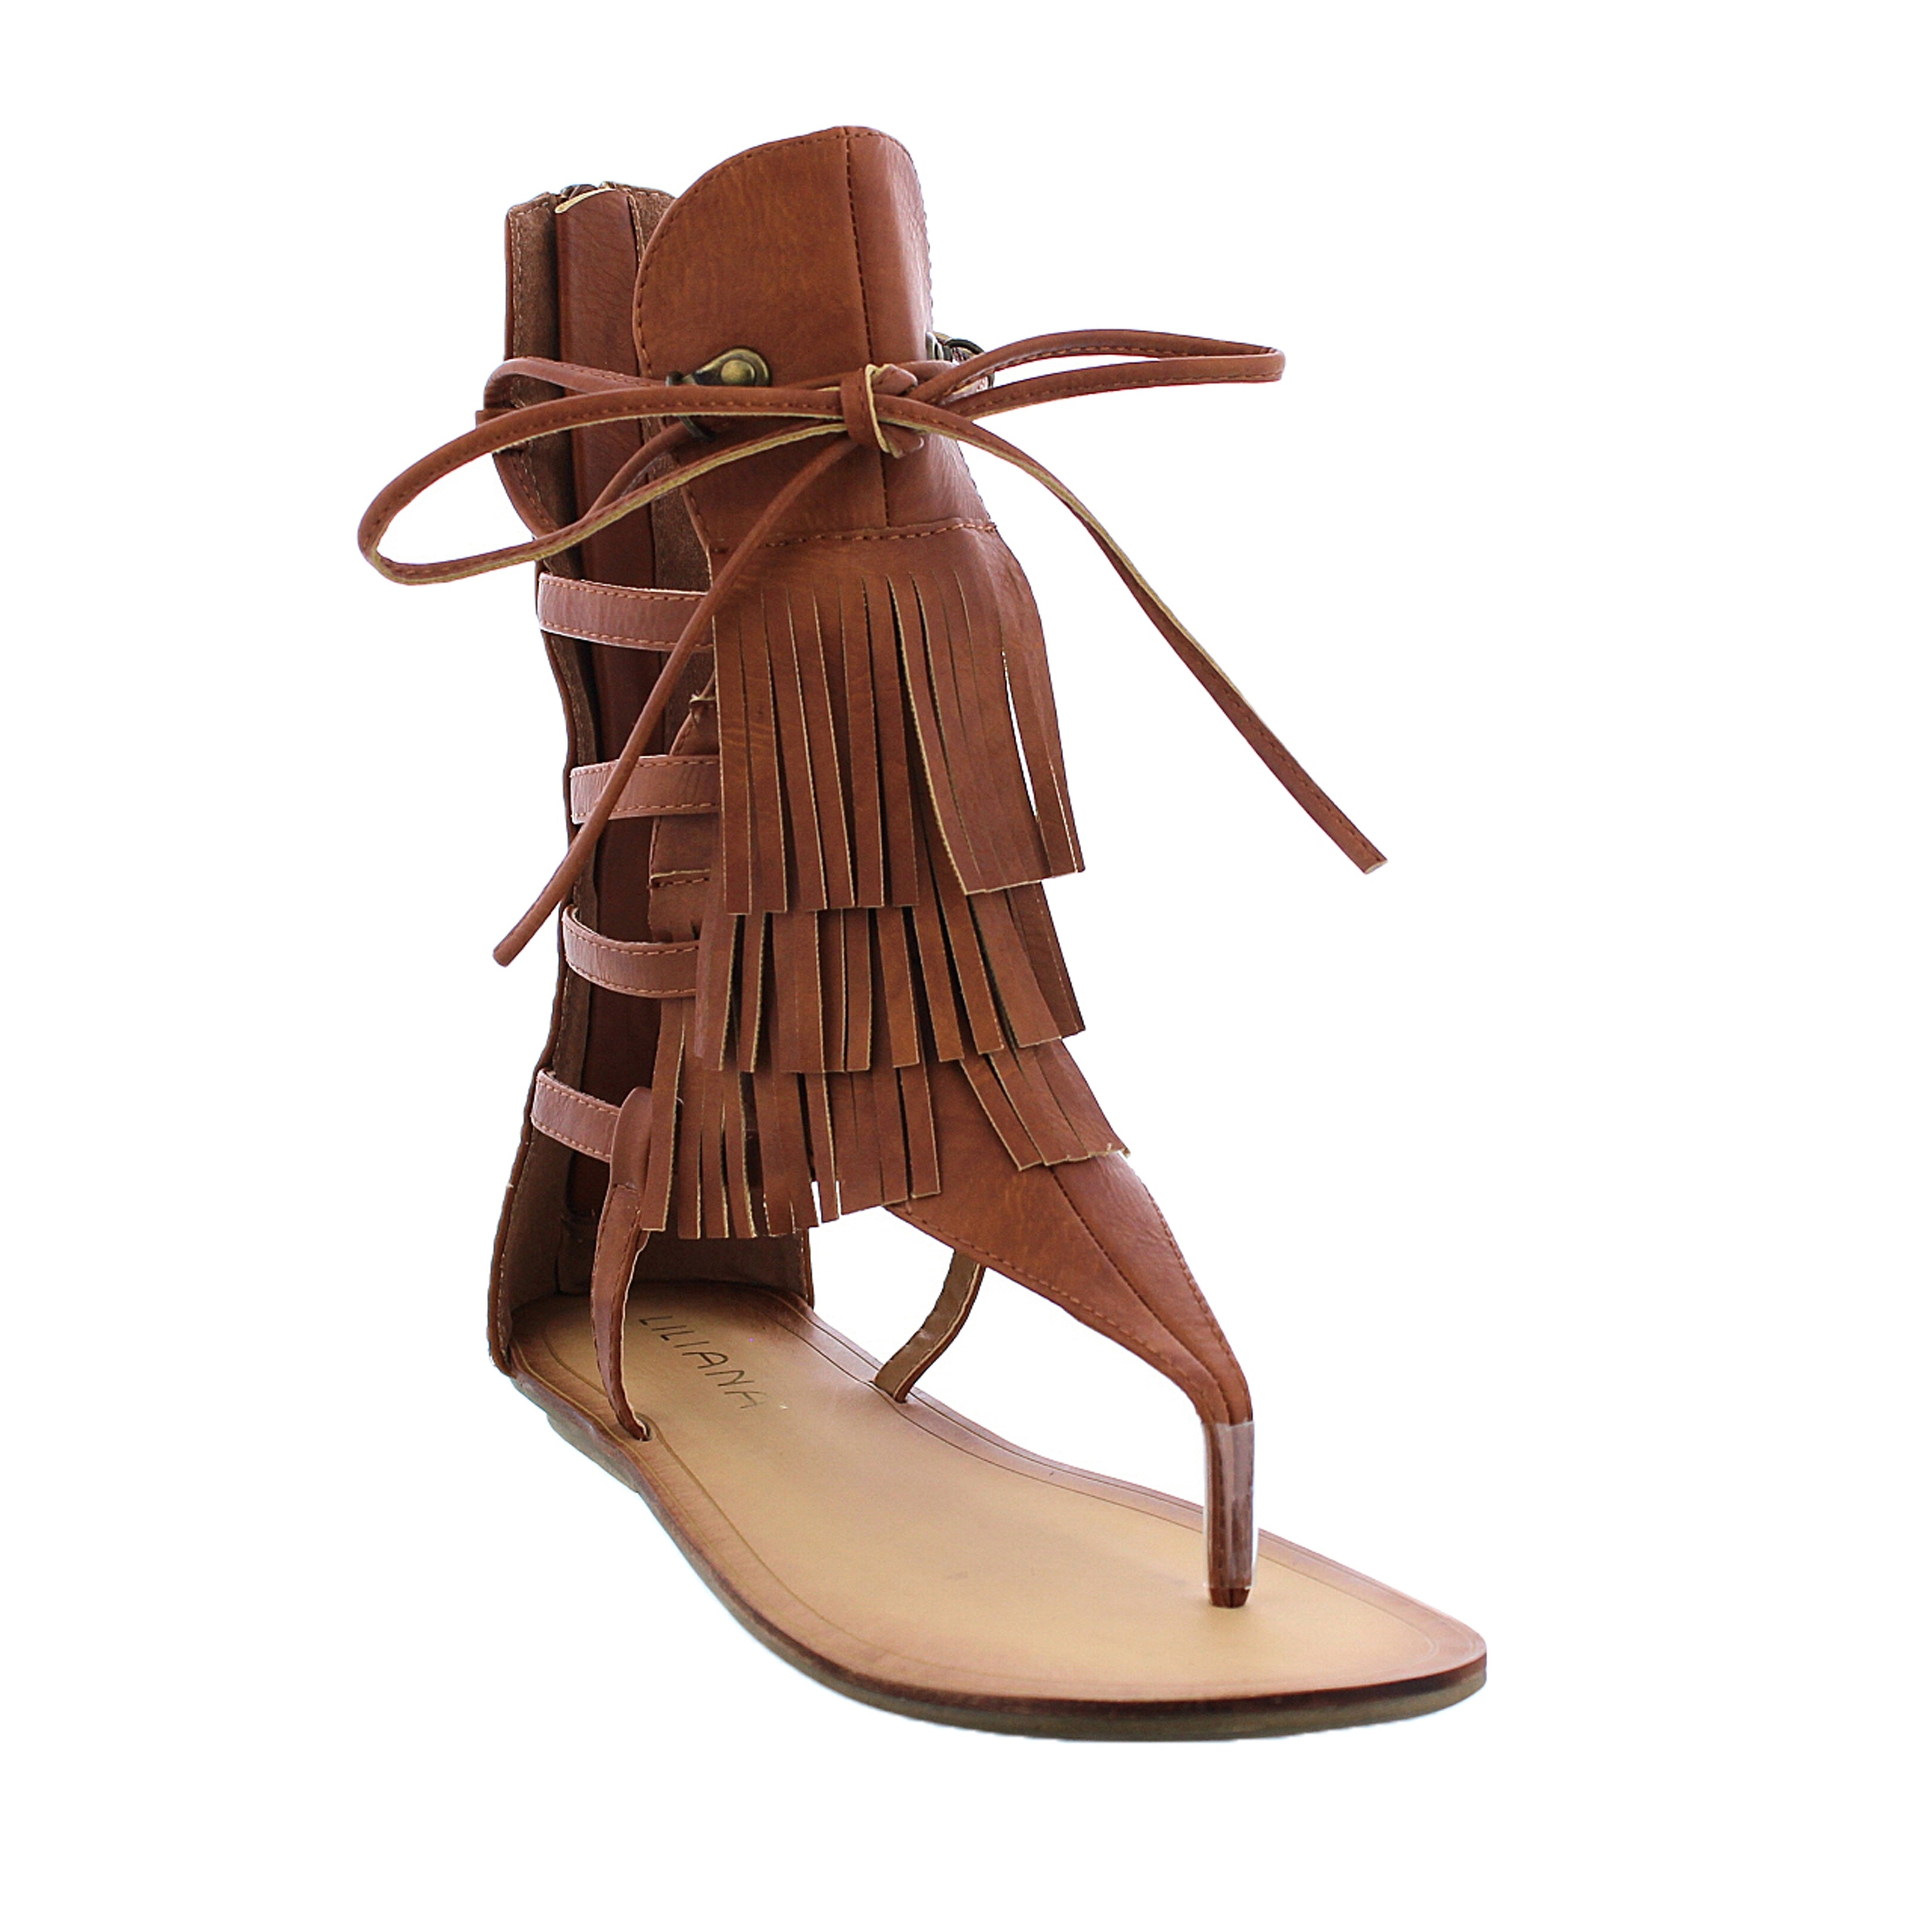 97e90b702cf92 Buy Gladiator Women's Sandals Online at Overstock | Our Best Women's Shoes  Deals